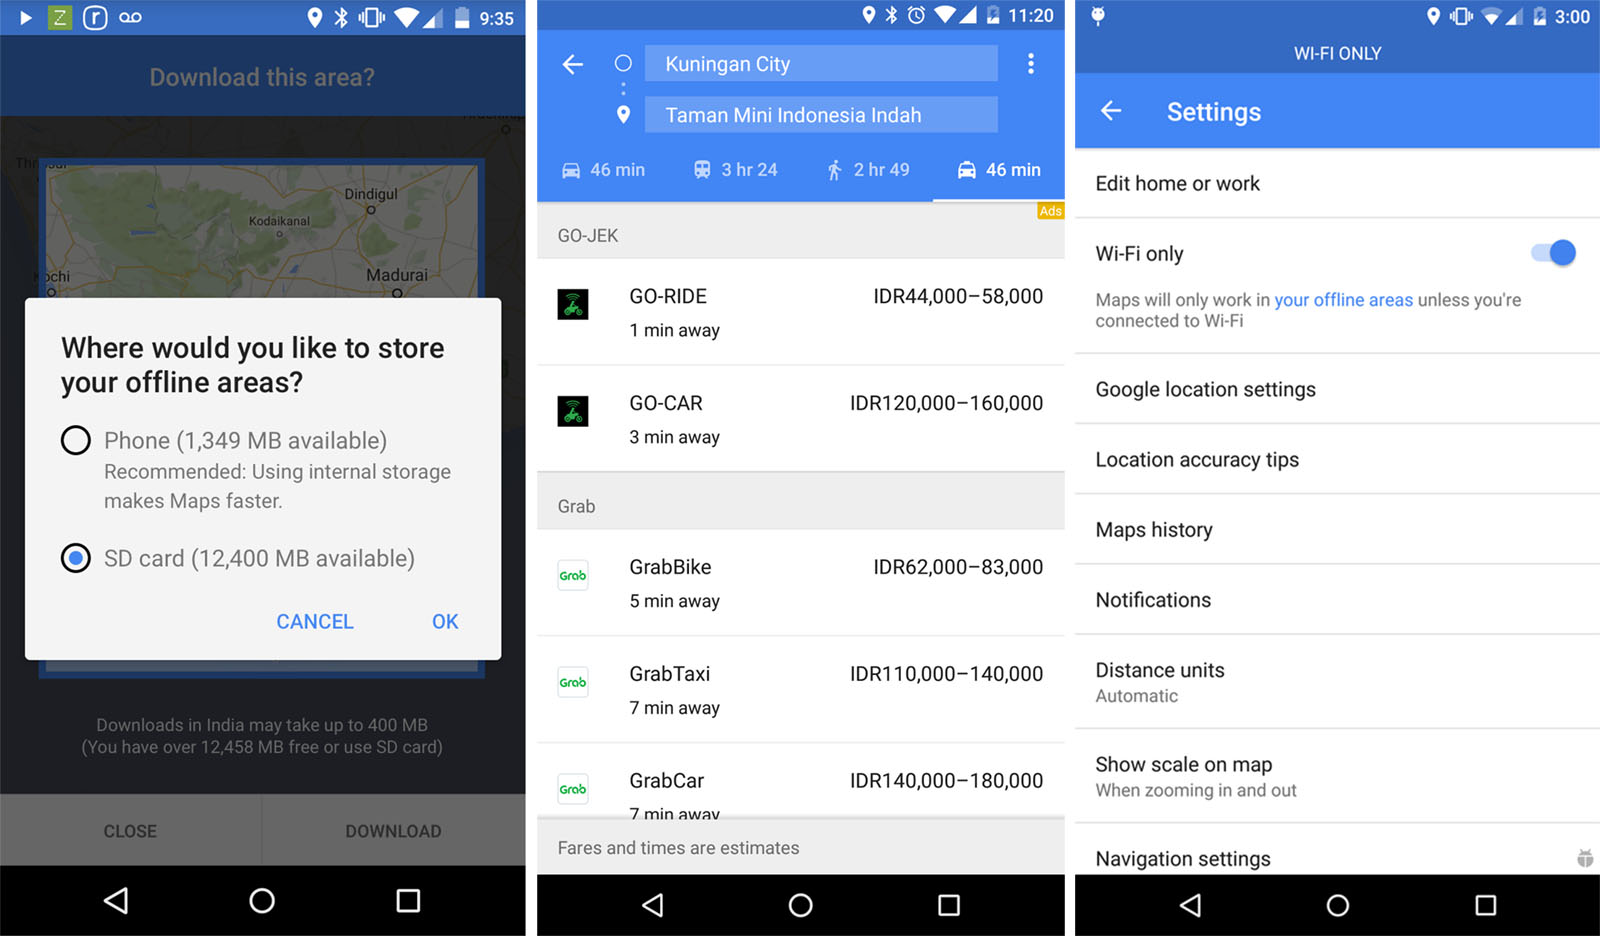 Google Maps for Android lets you save maps to an SD card ... on mn map, vg map, wy map, co map, il map, wi map, tx map, cif map, canada map, usa map, penh map, nd map, kr map, id map, pal map, south dakota highway map, ne map, tn map, et map, eastern ia map,